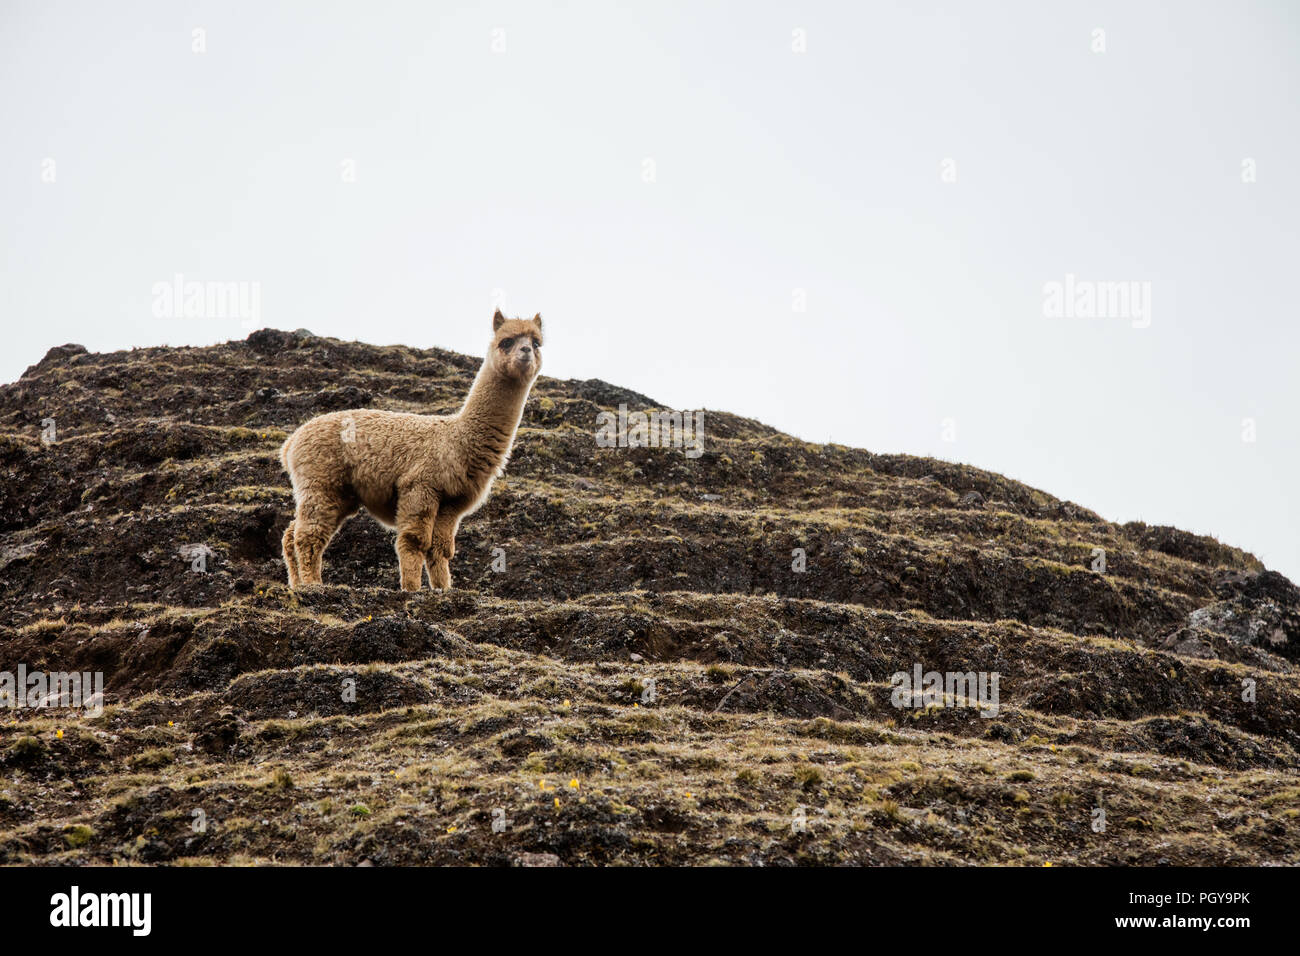 Young Llama on hill in the Lares Valley, near Machu Picchu, Peru - Stock Image